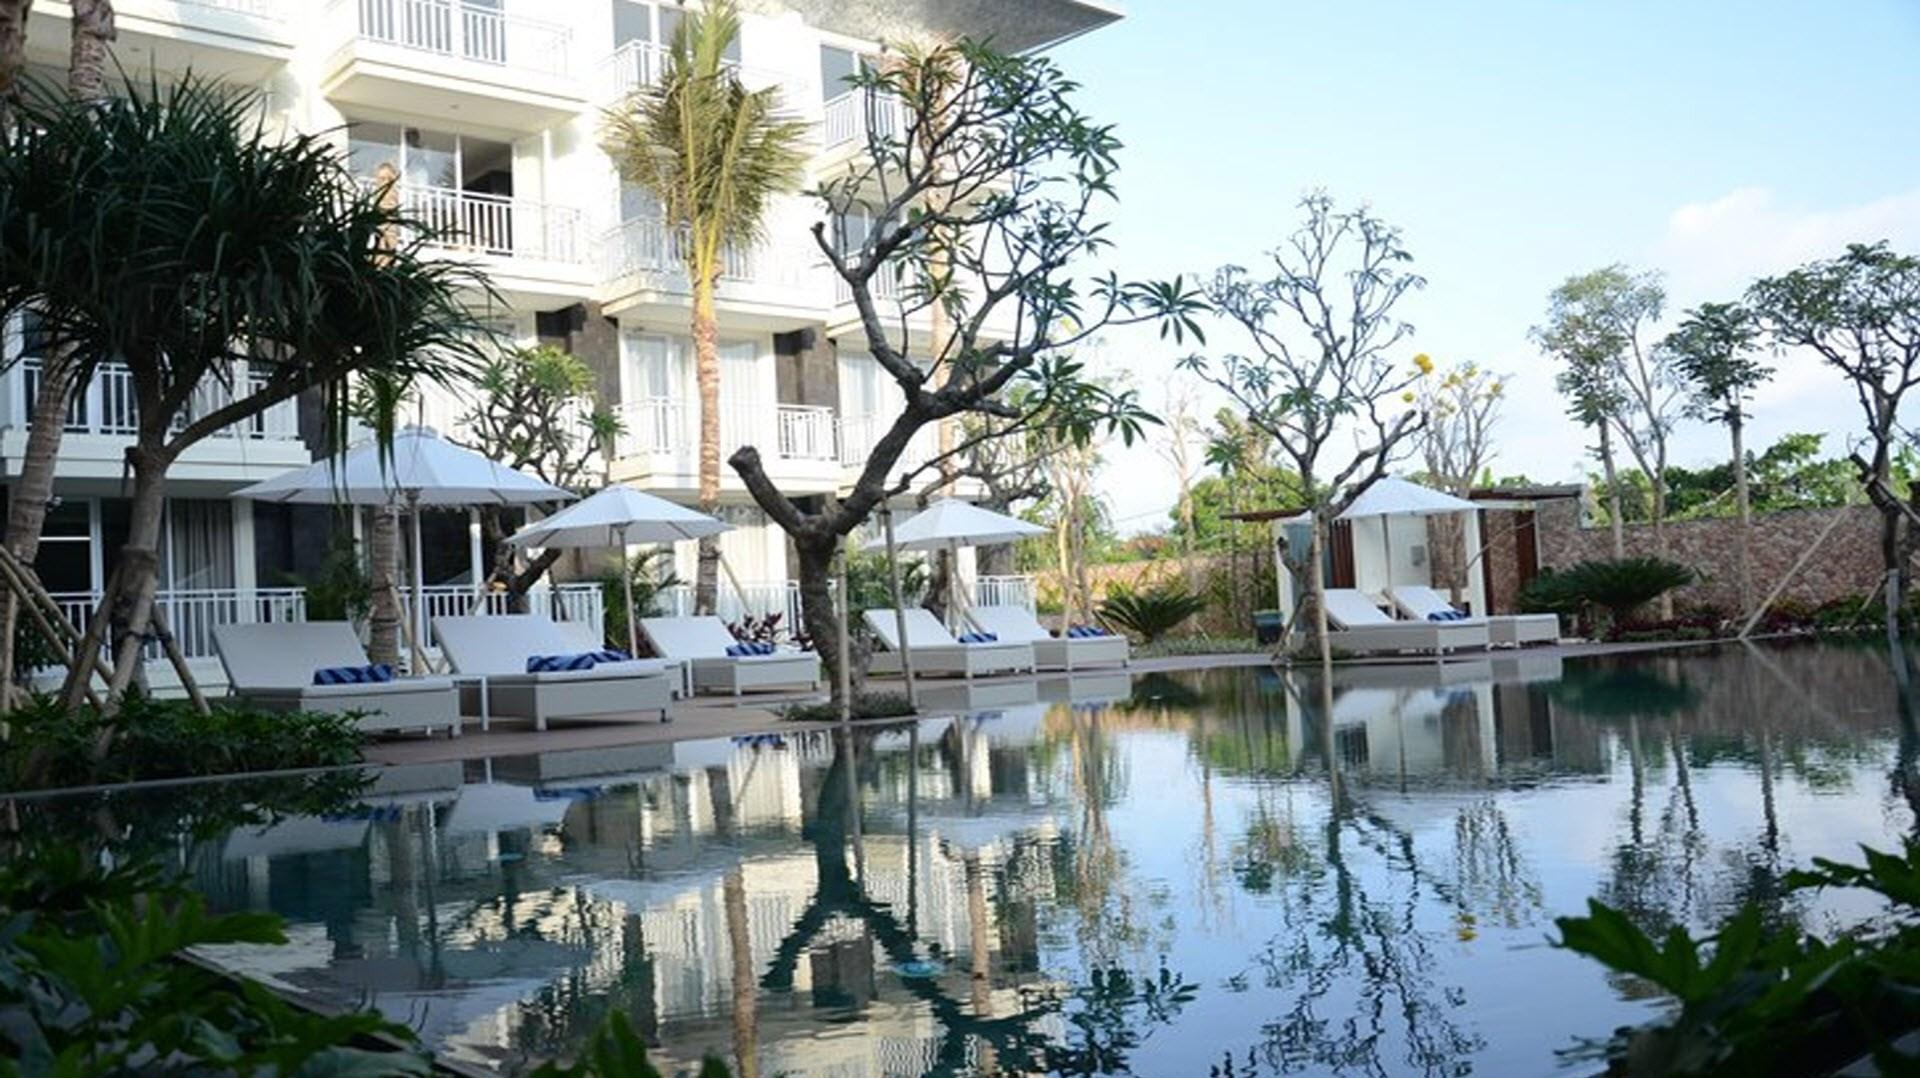 Meetings And Events At Fontana Hotel Bali A Phm Collection Bali Id